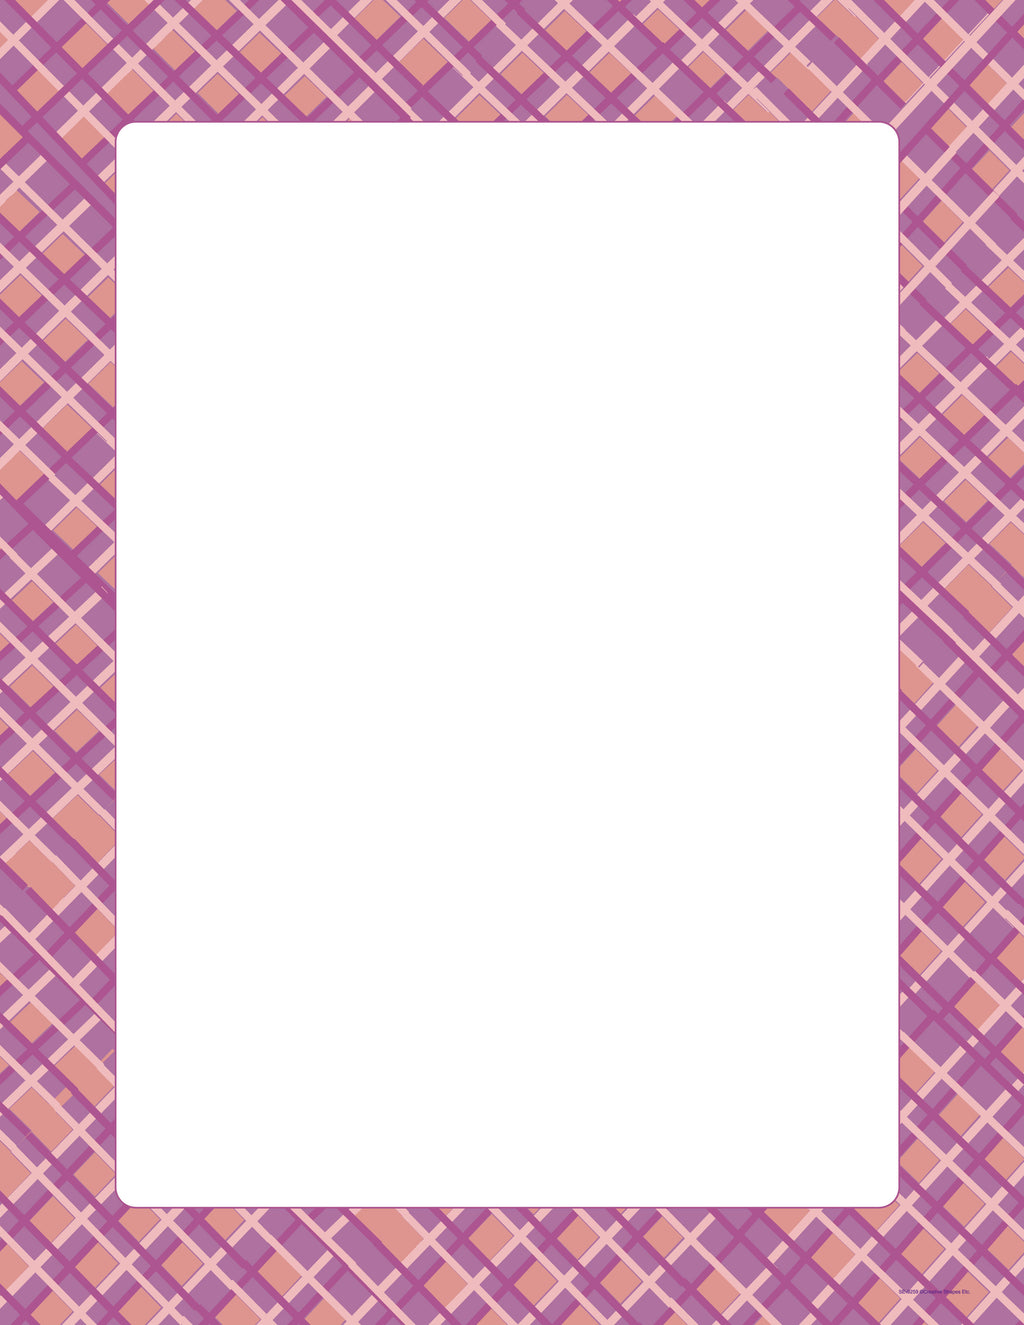 Designer Paper - Pink Plaid (50 Sheet Package) - Creative Shapes Etc.